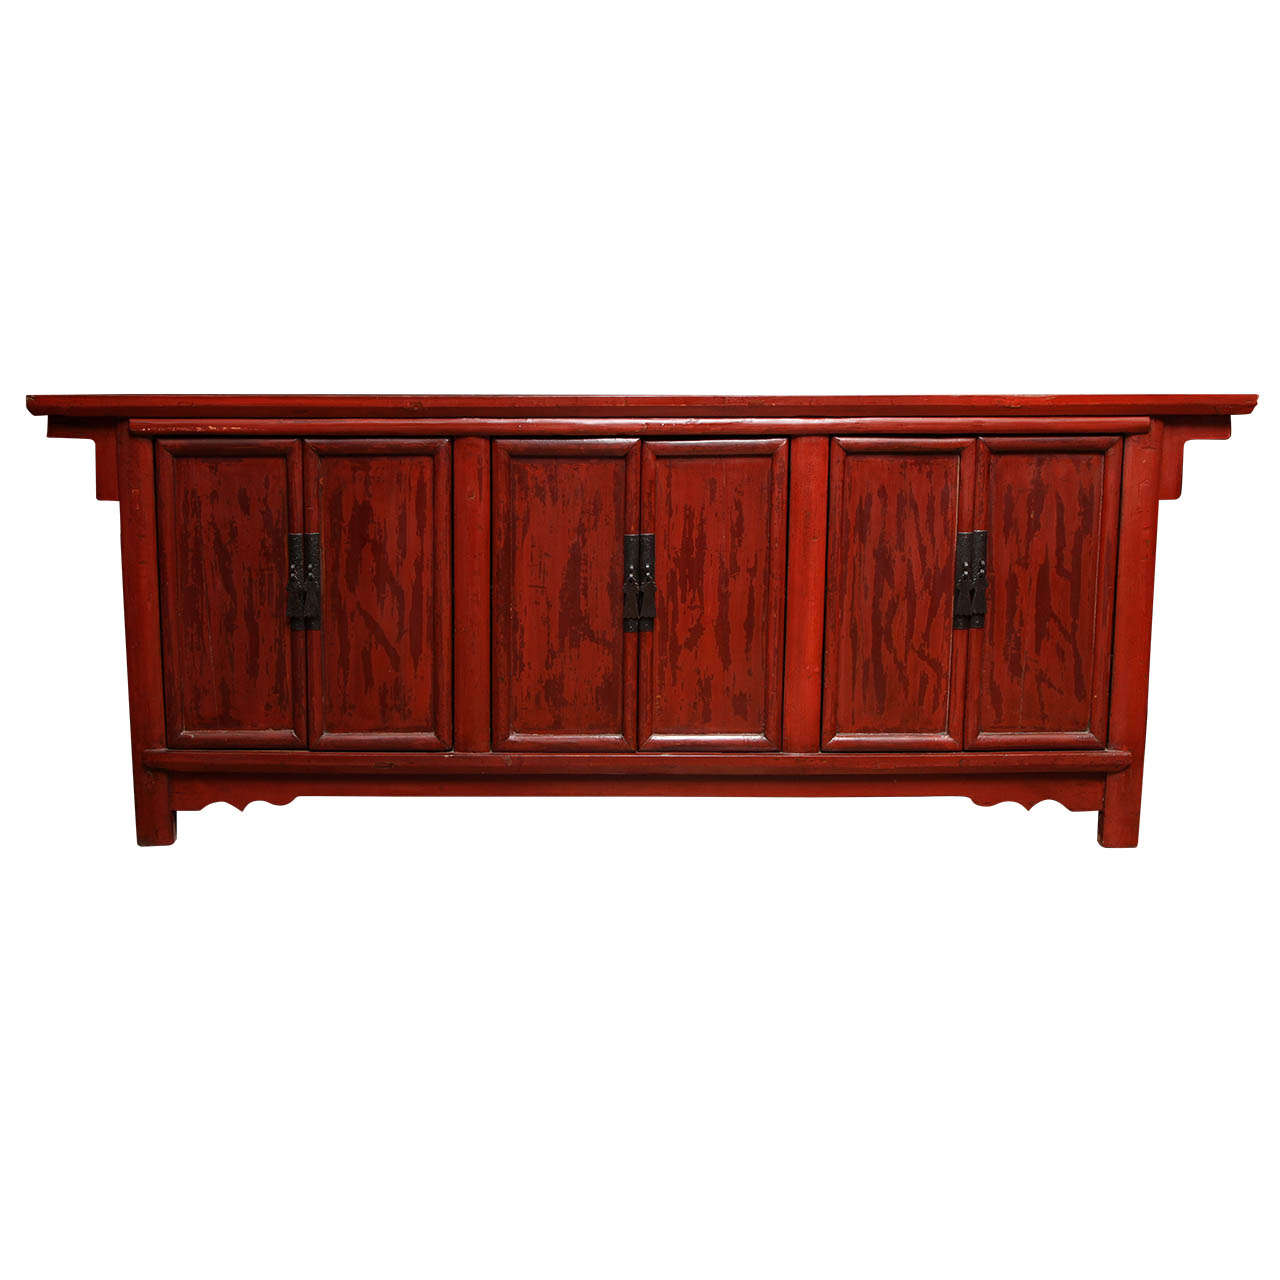 Antique Shanxi Large Red Lacquered Elm Sideboard from China, Early 20th Century